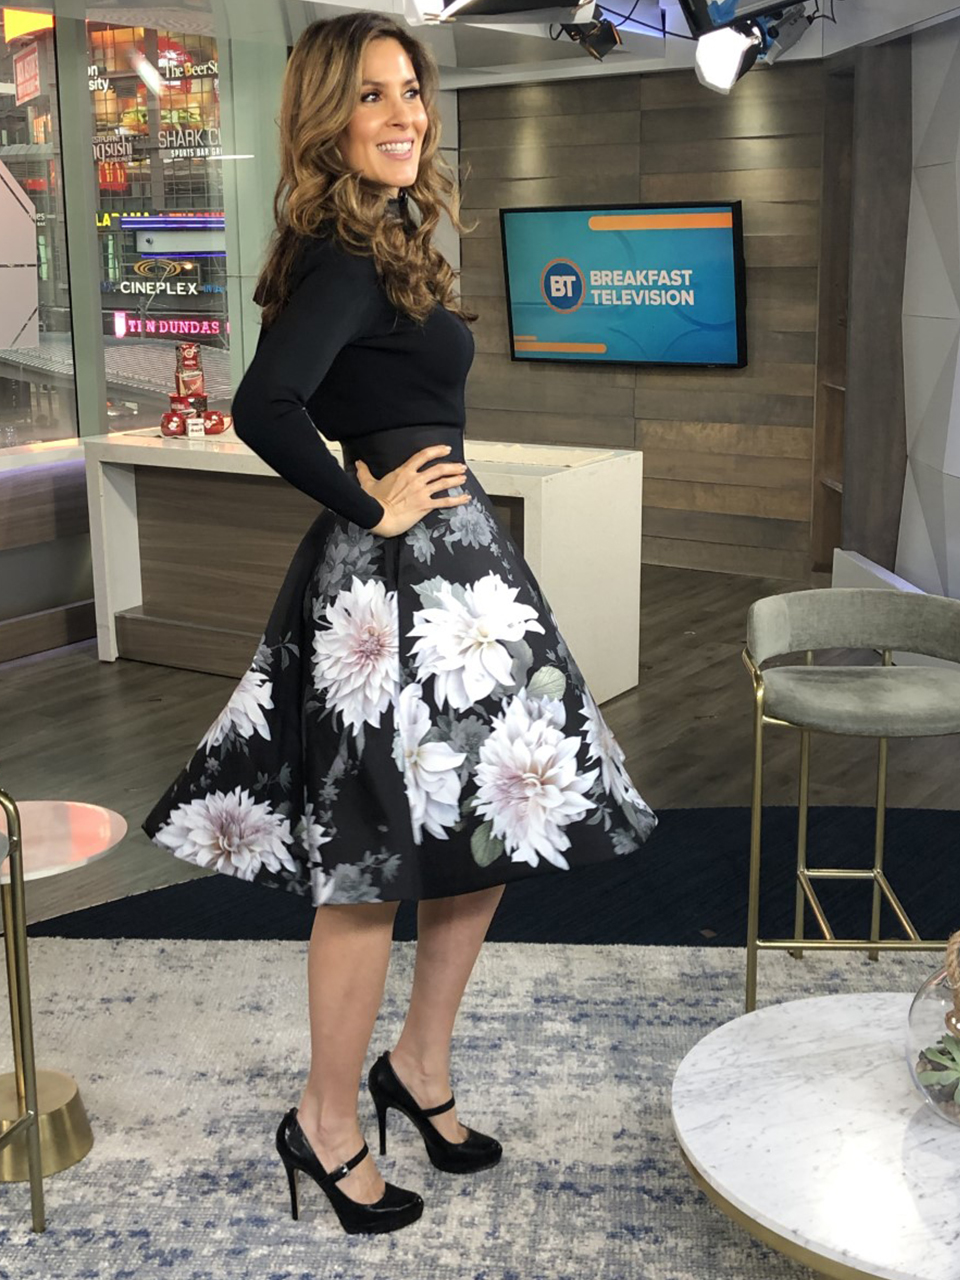 Dina wearing white flower print skirt with black top with heels - 2